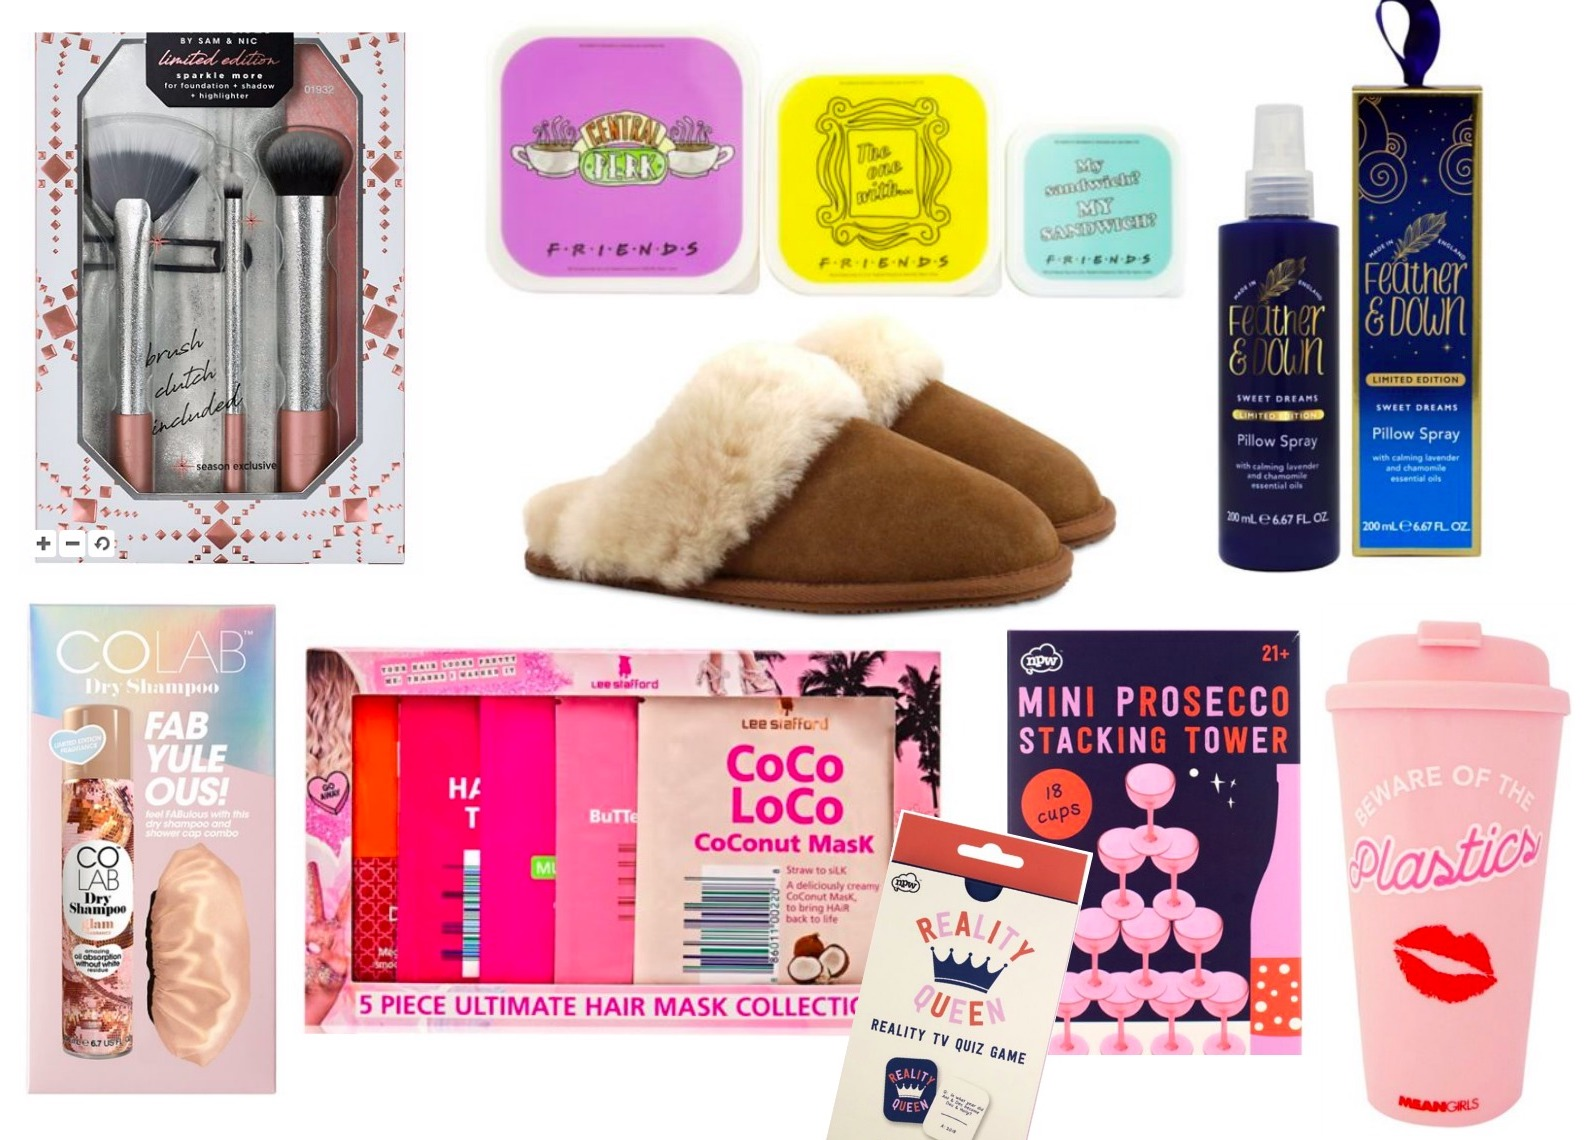 Boots Christmas Gifts Top Picks Jenna Suth